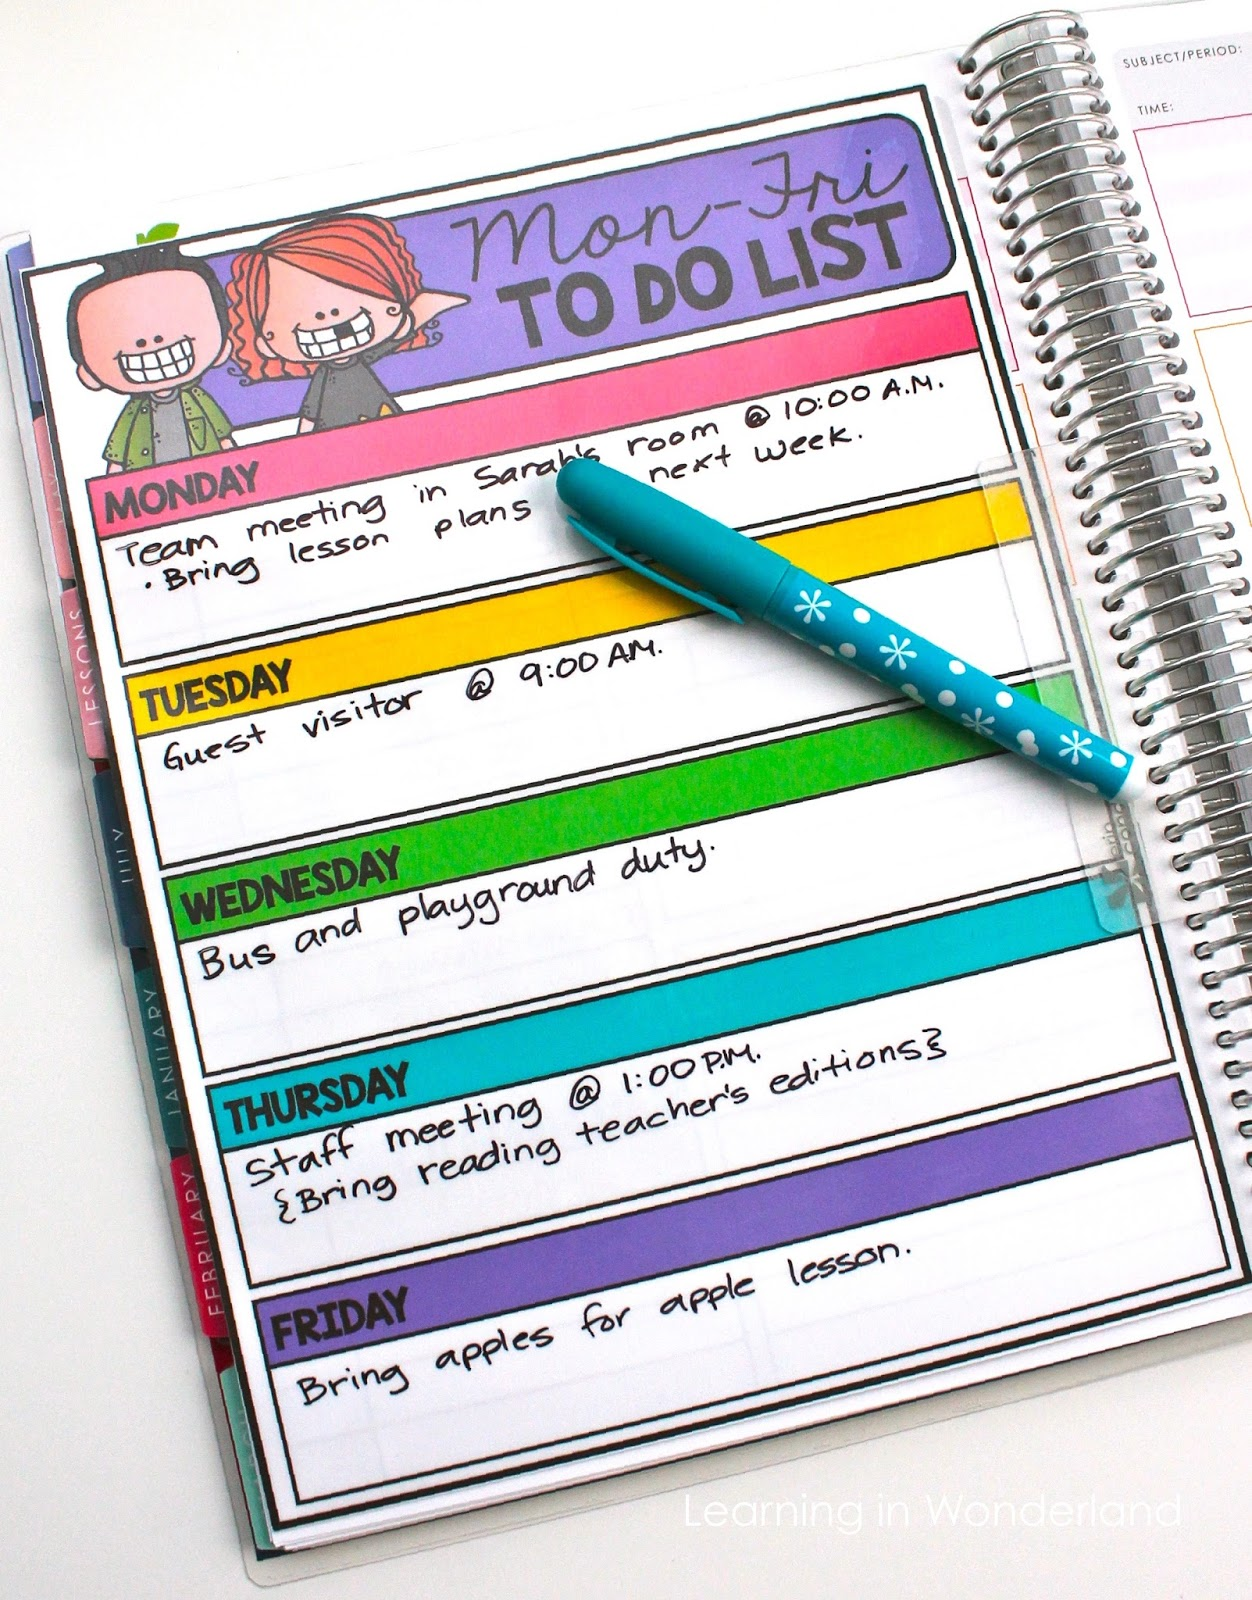 Free teacher checklist!